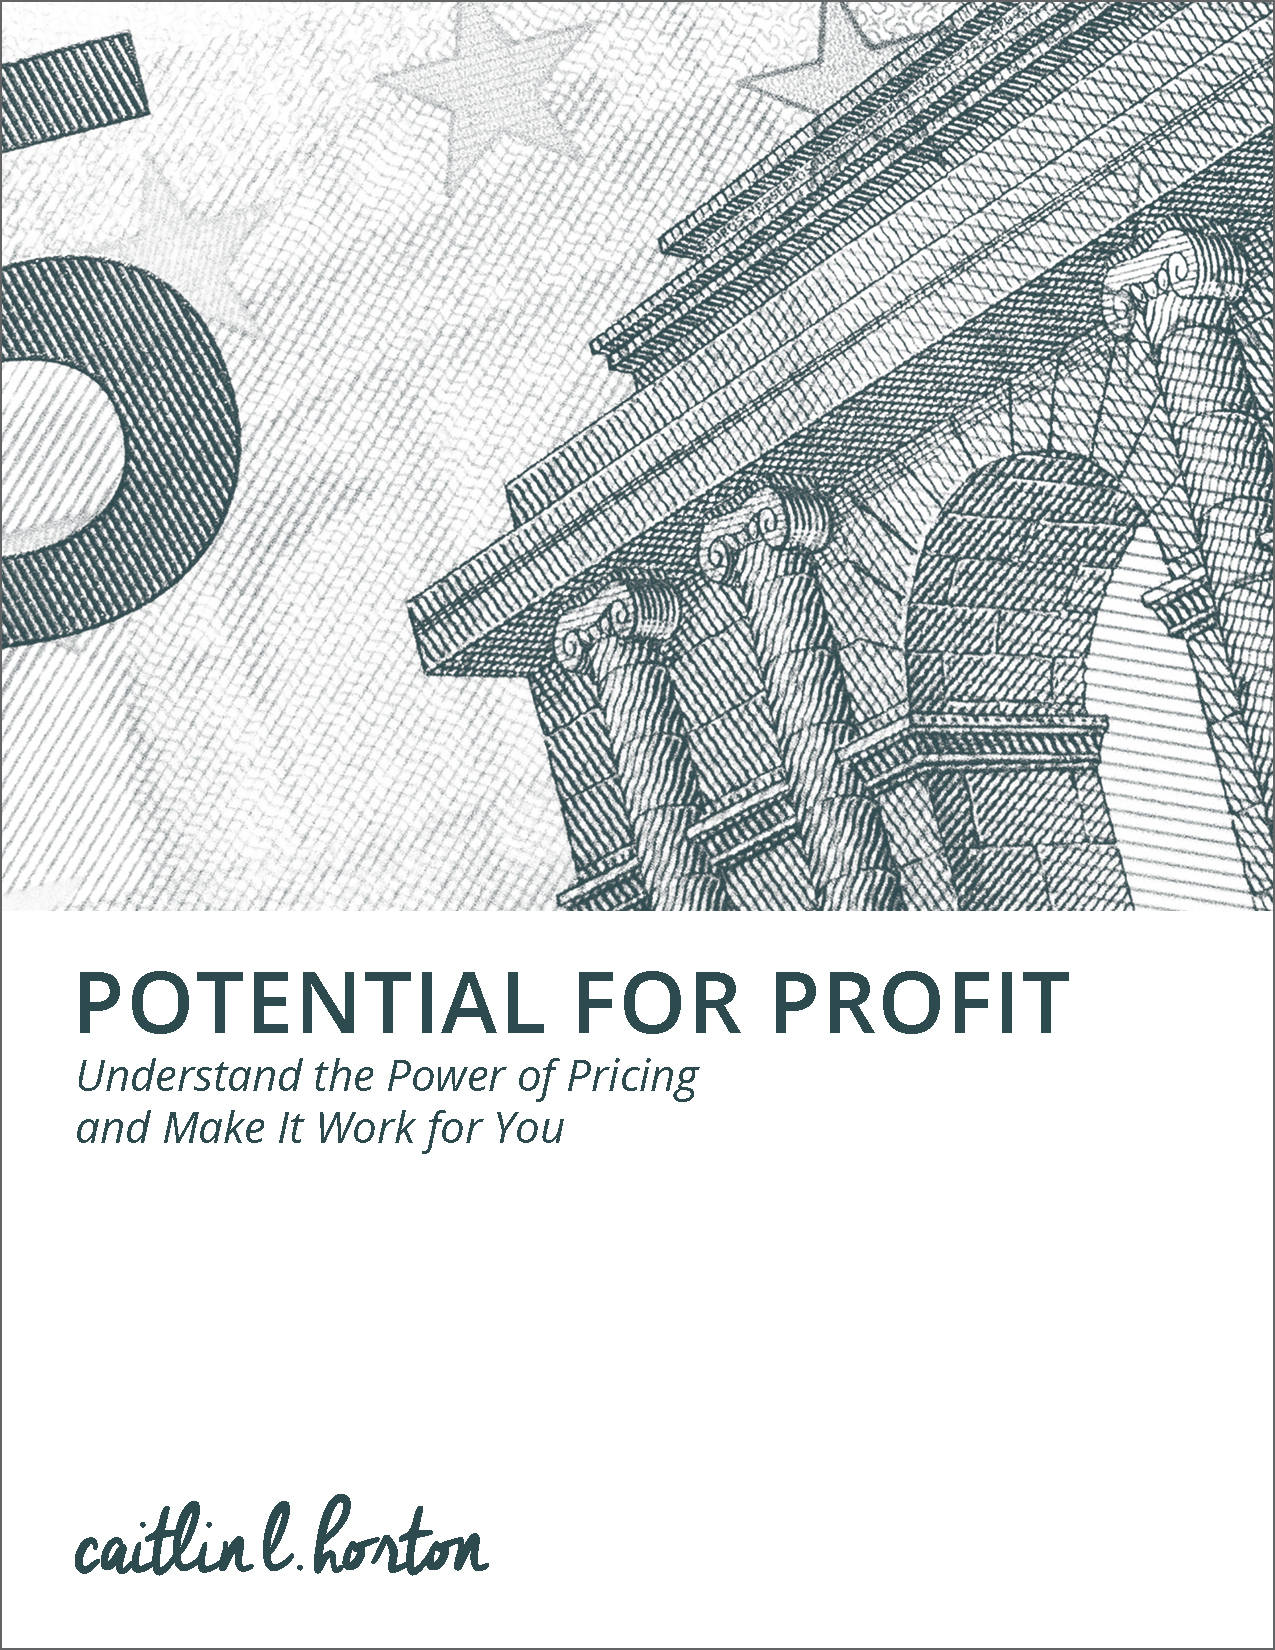 Horton Brand Strategy's Potential for Pricing Guide and Excel Workbook